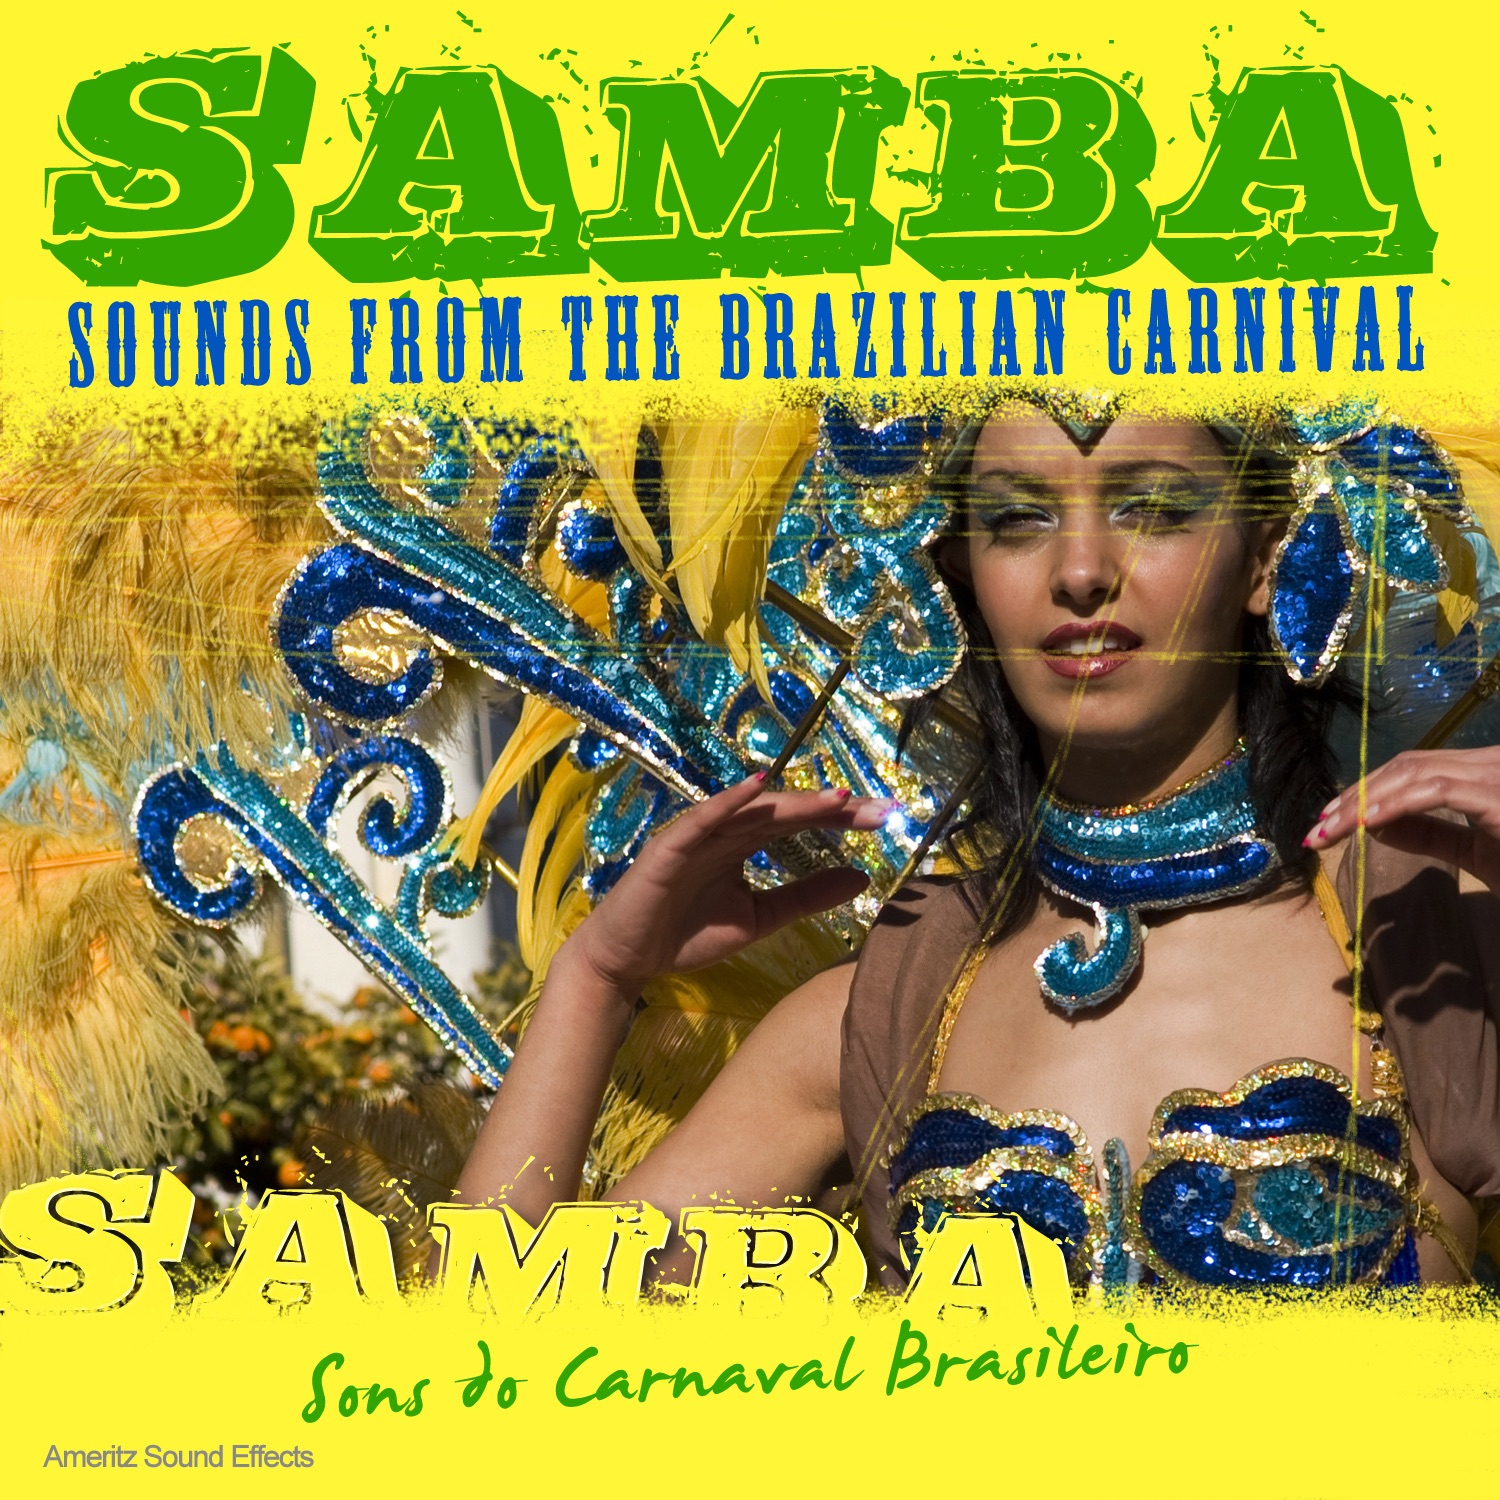 Samba! - Sounds from the Brazilian Carnival (Samba! - Sons Do Carnaval Brasileiro)